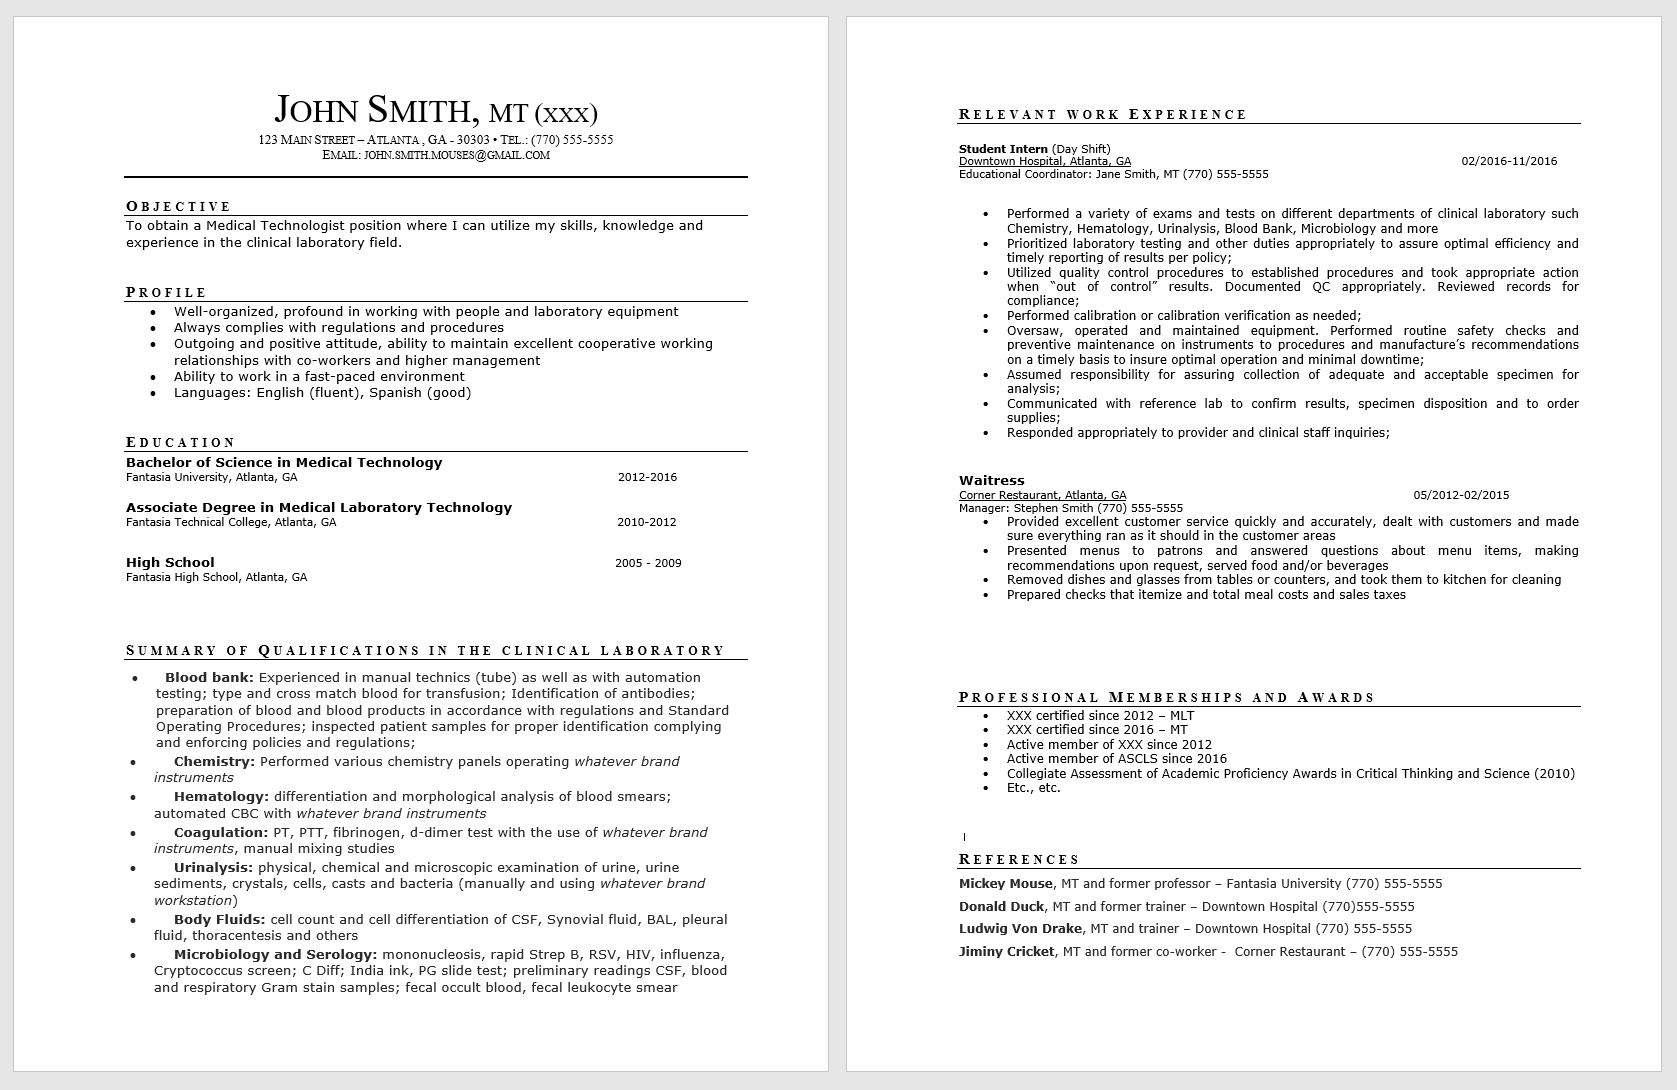 résumé guide society for clinical laboratory science state sample resume medical Resume Sample Resume For Medical Technologist